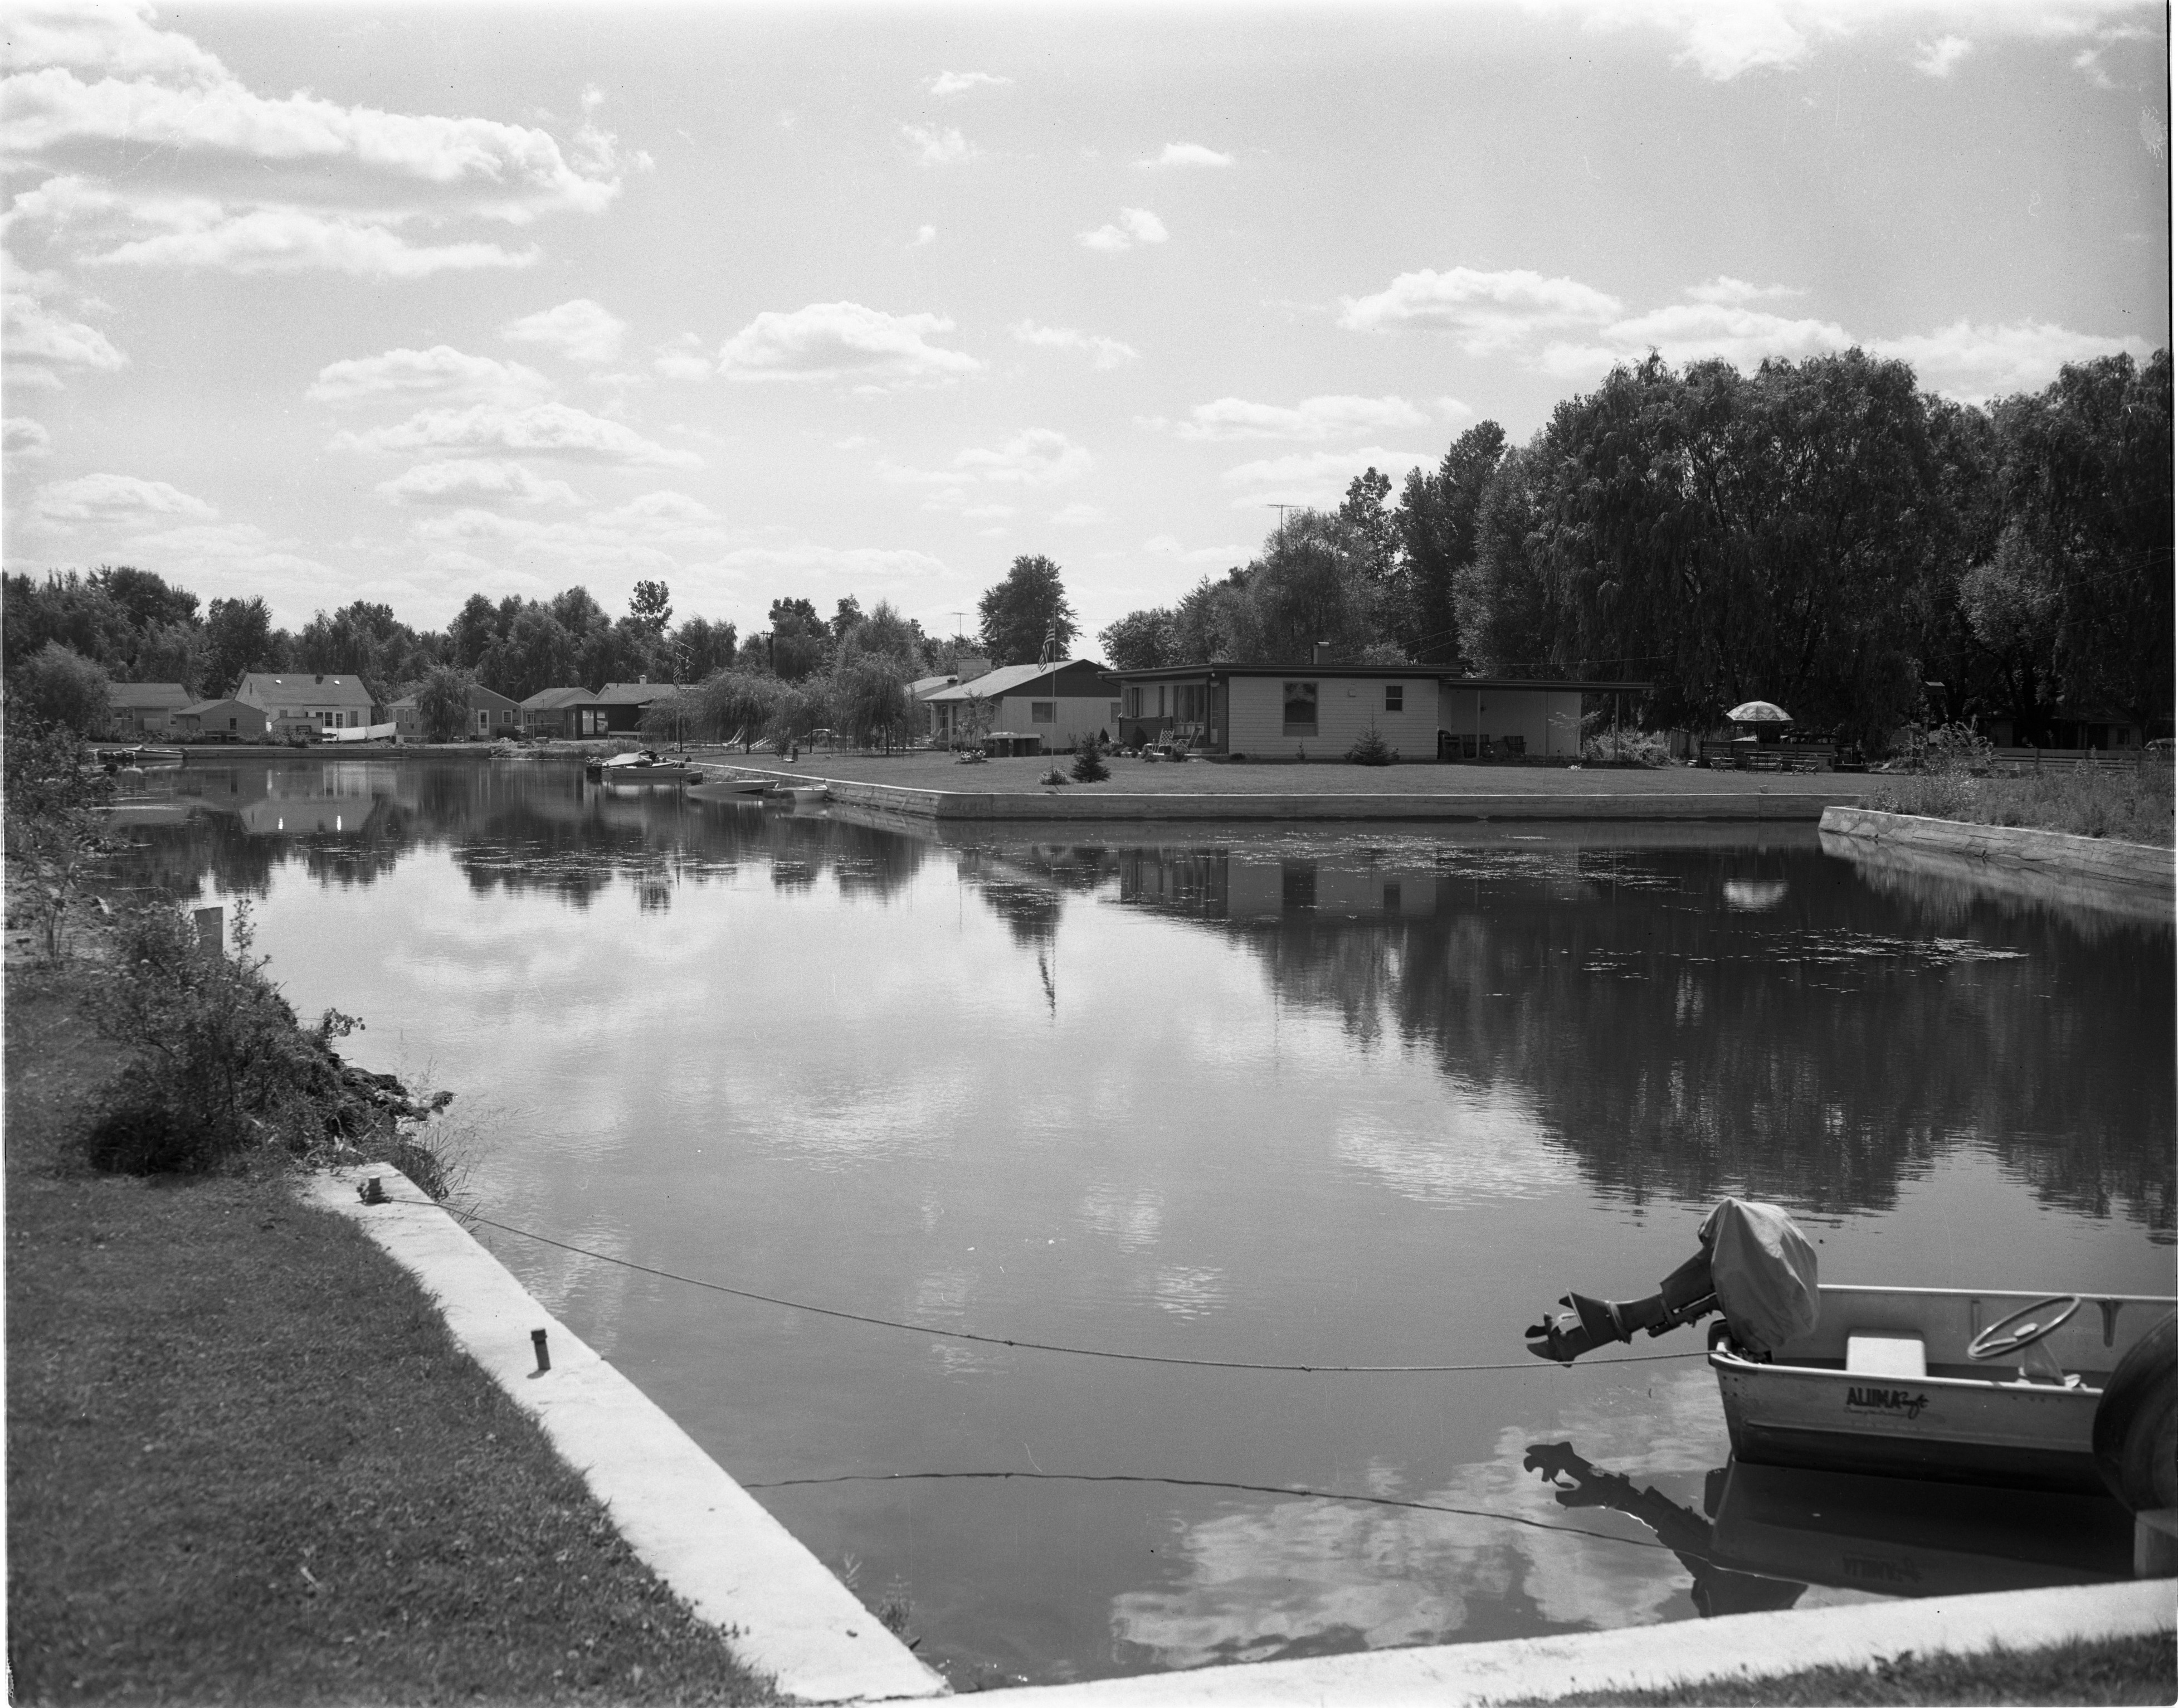 Deimen-Stull Subdivision and Bunny Lake, August 1957 image